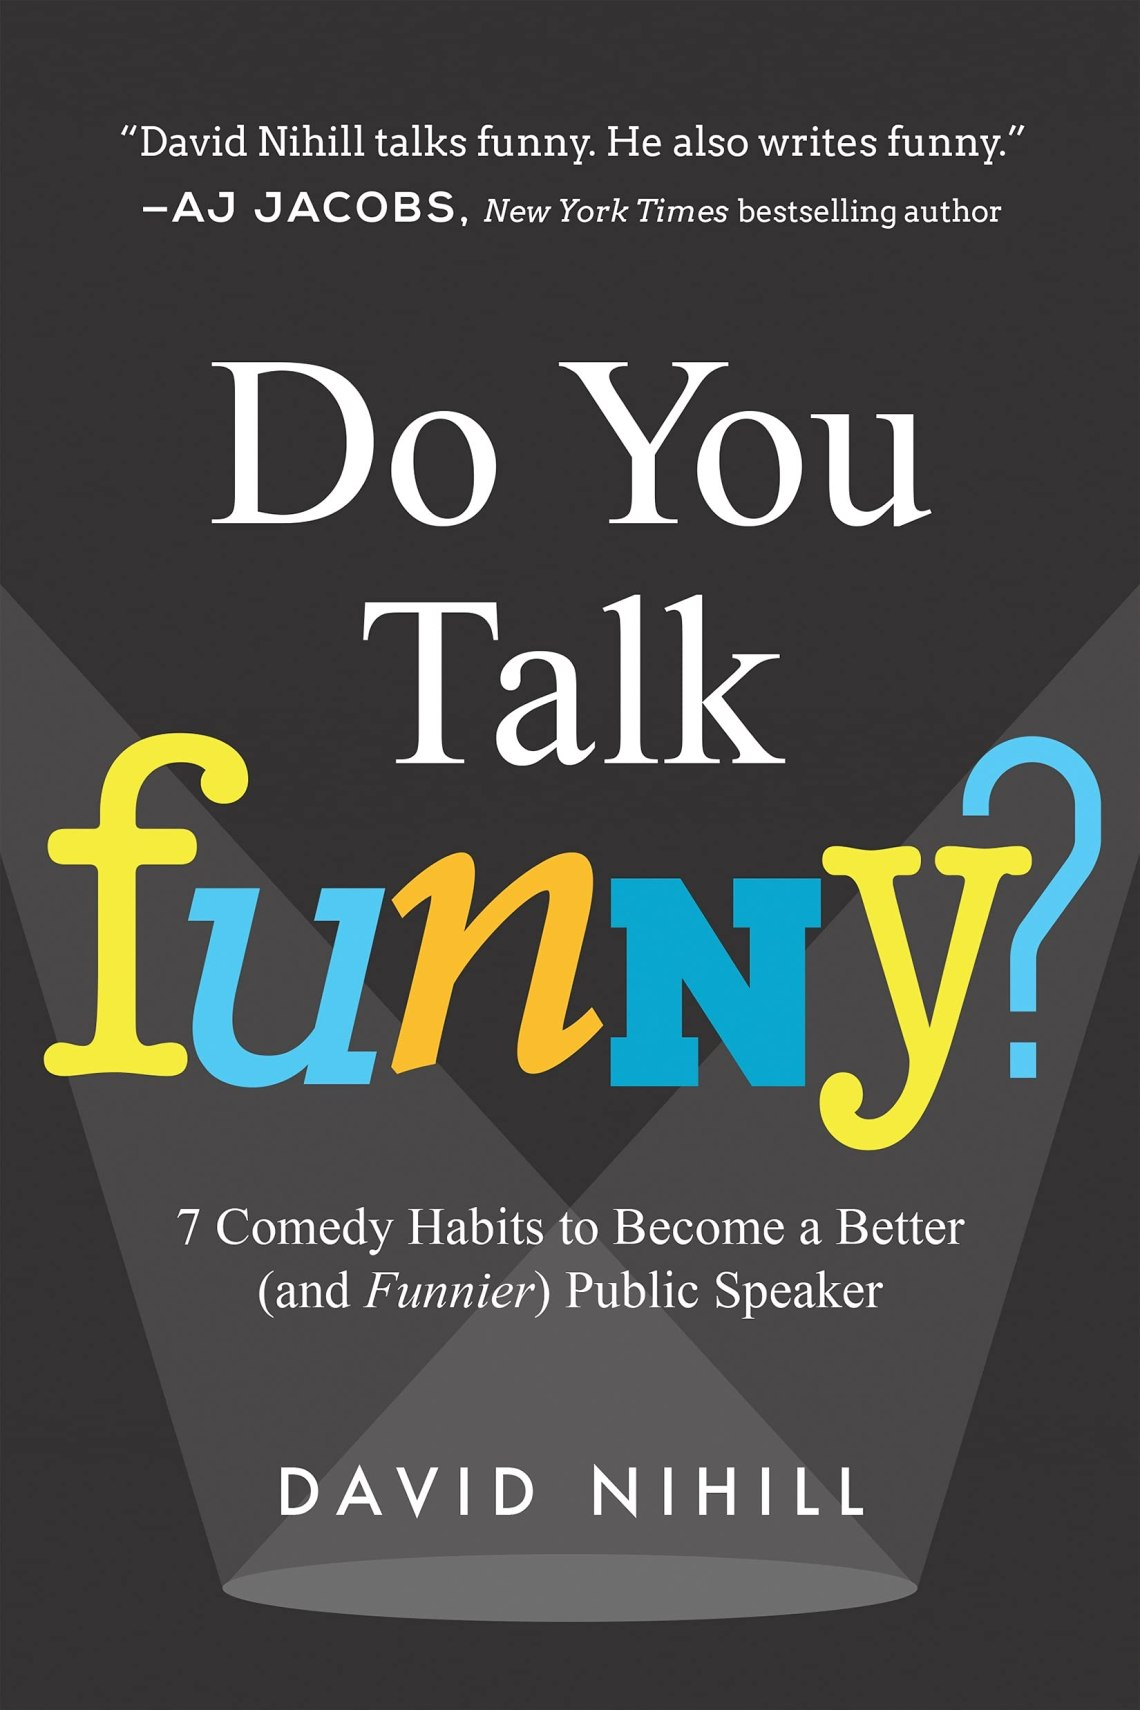 Do you talk funny? one of public speaking books